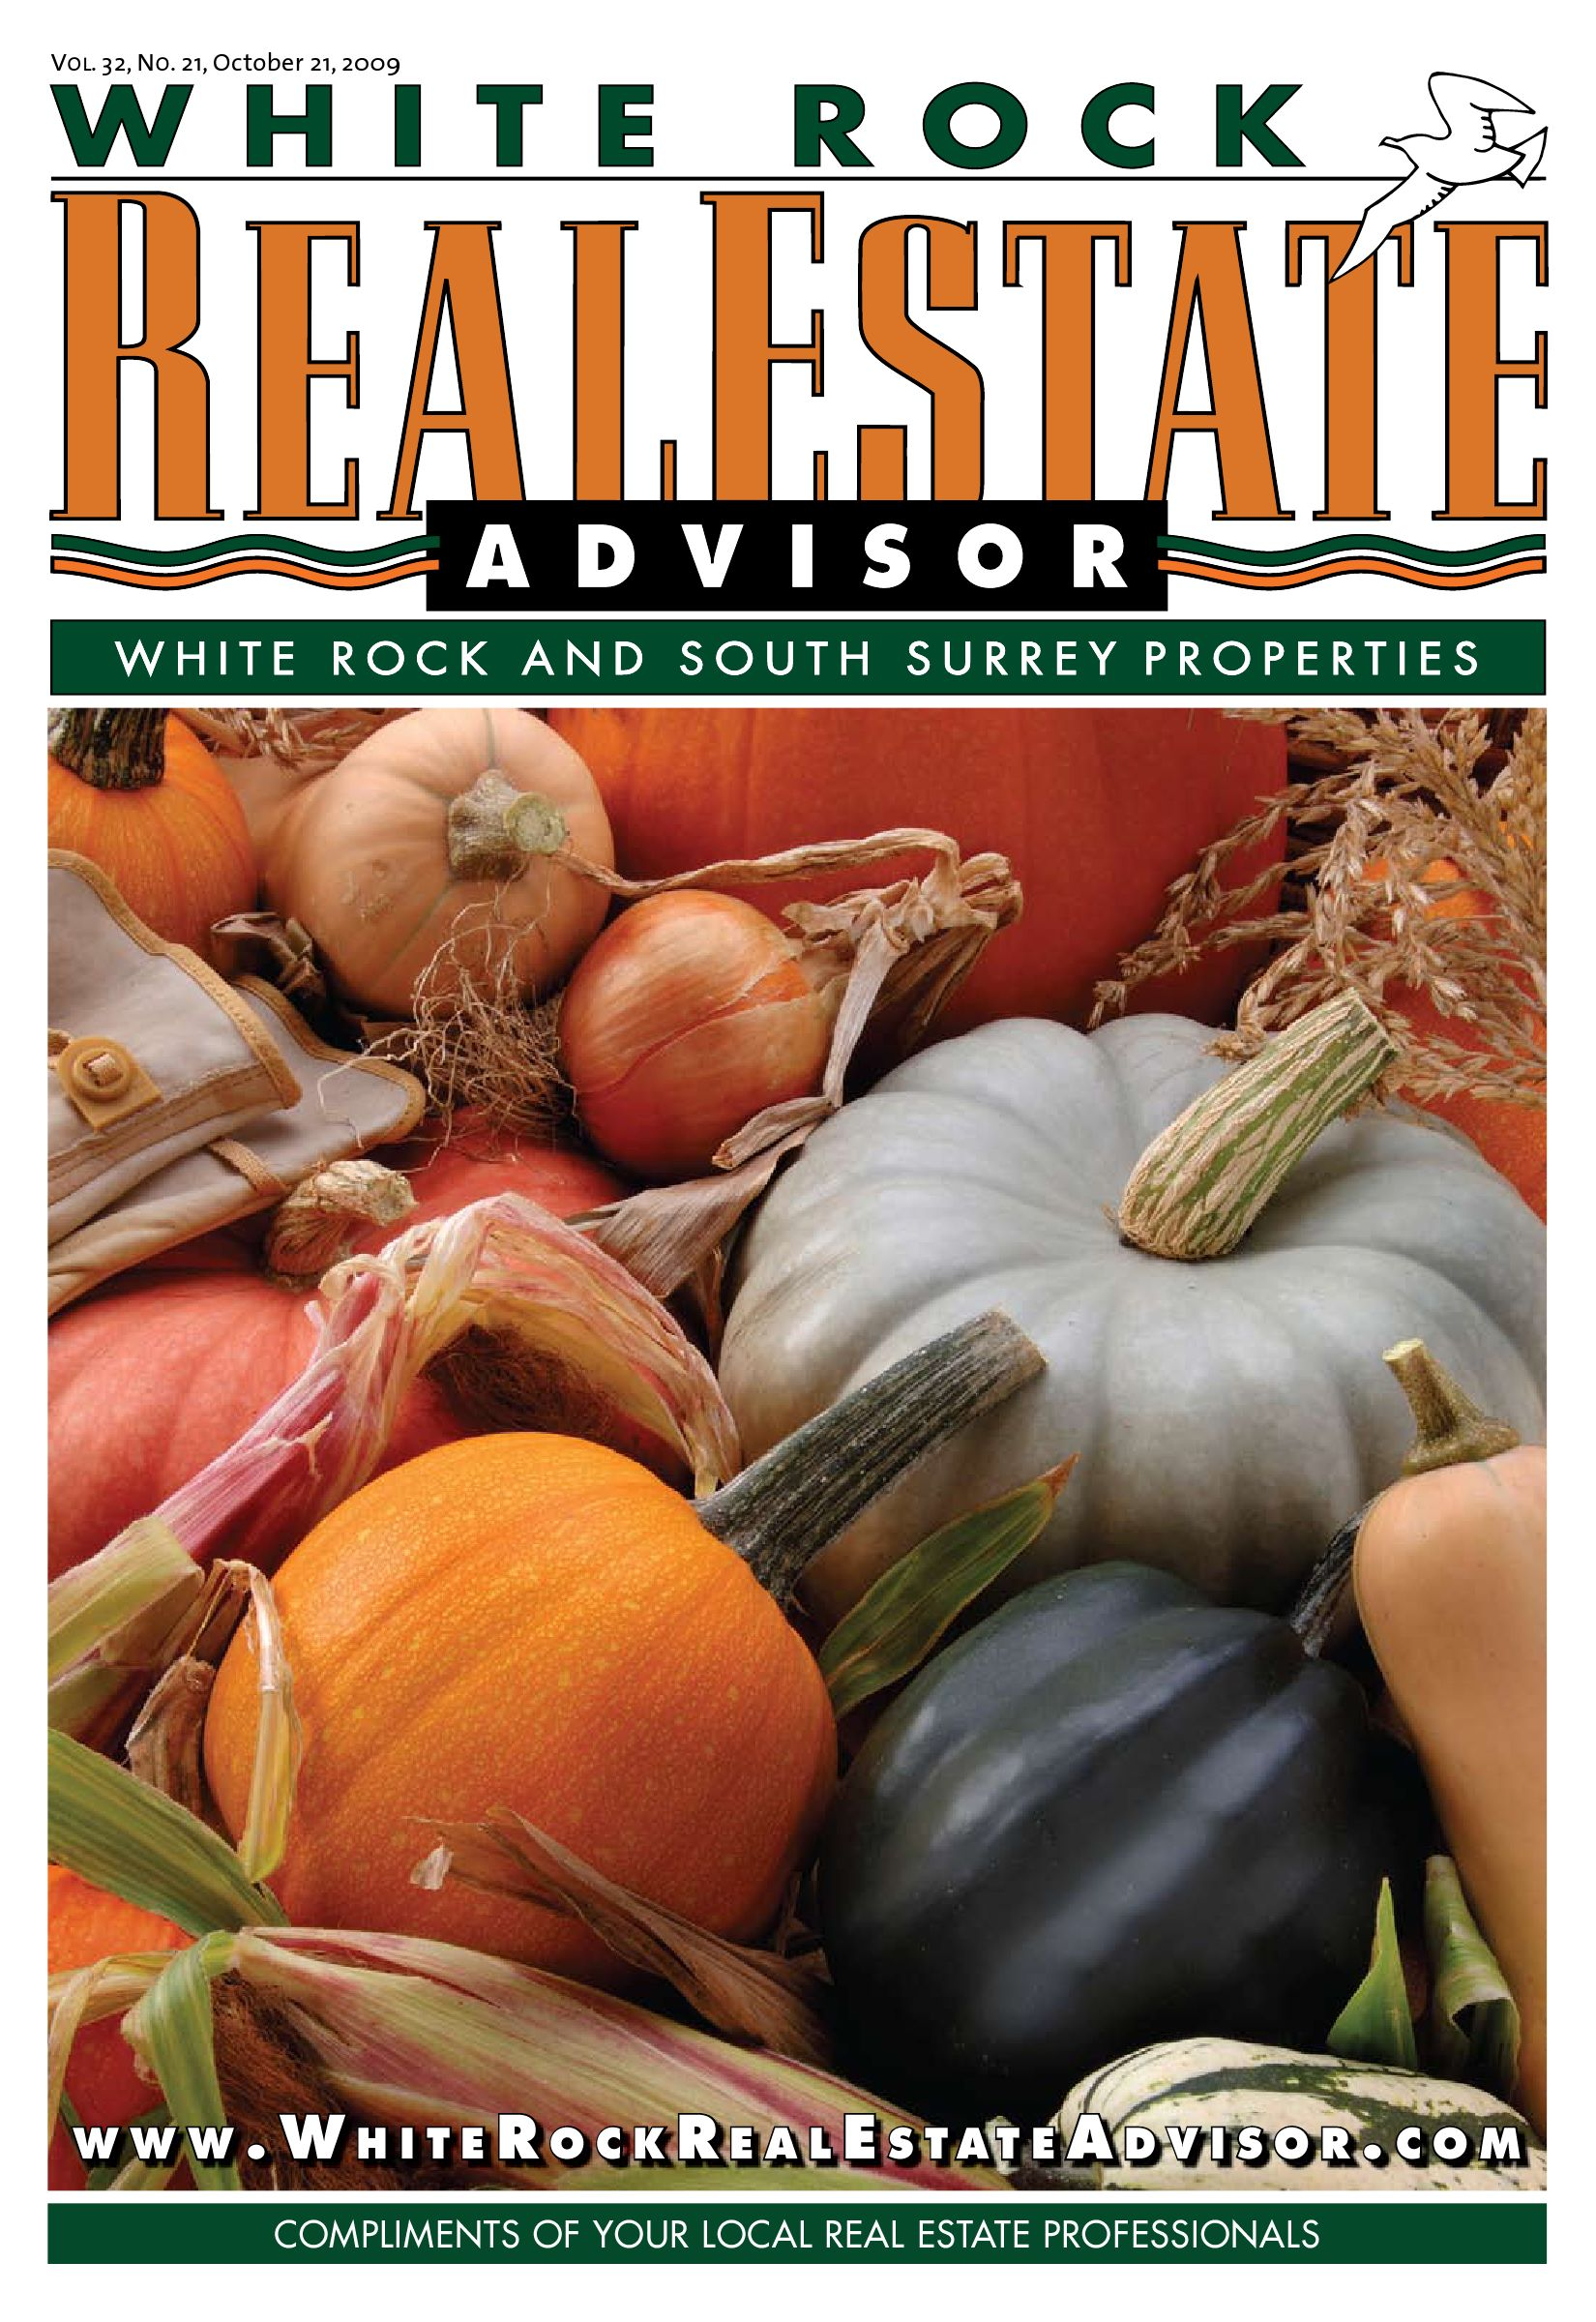 White Rock Real Estate Advisor by Peregrine Graphics issuu